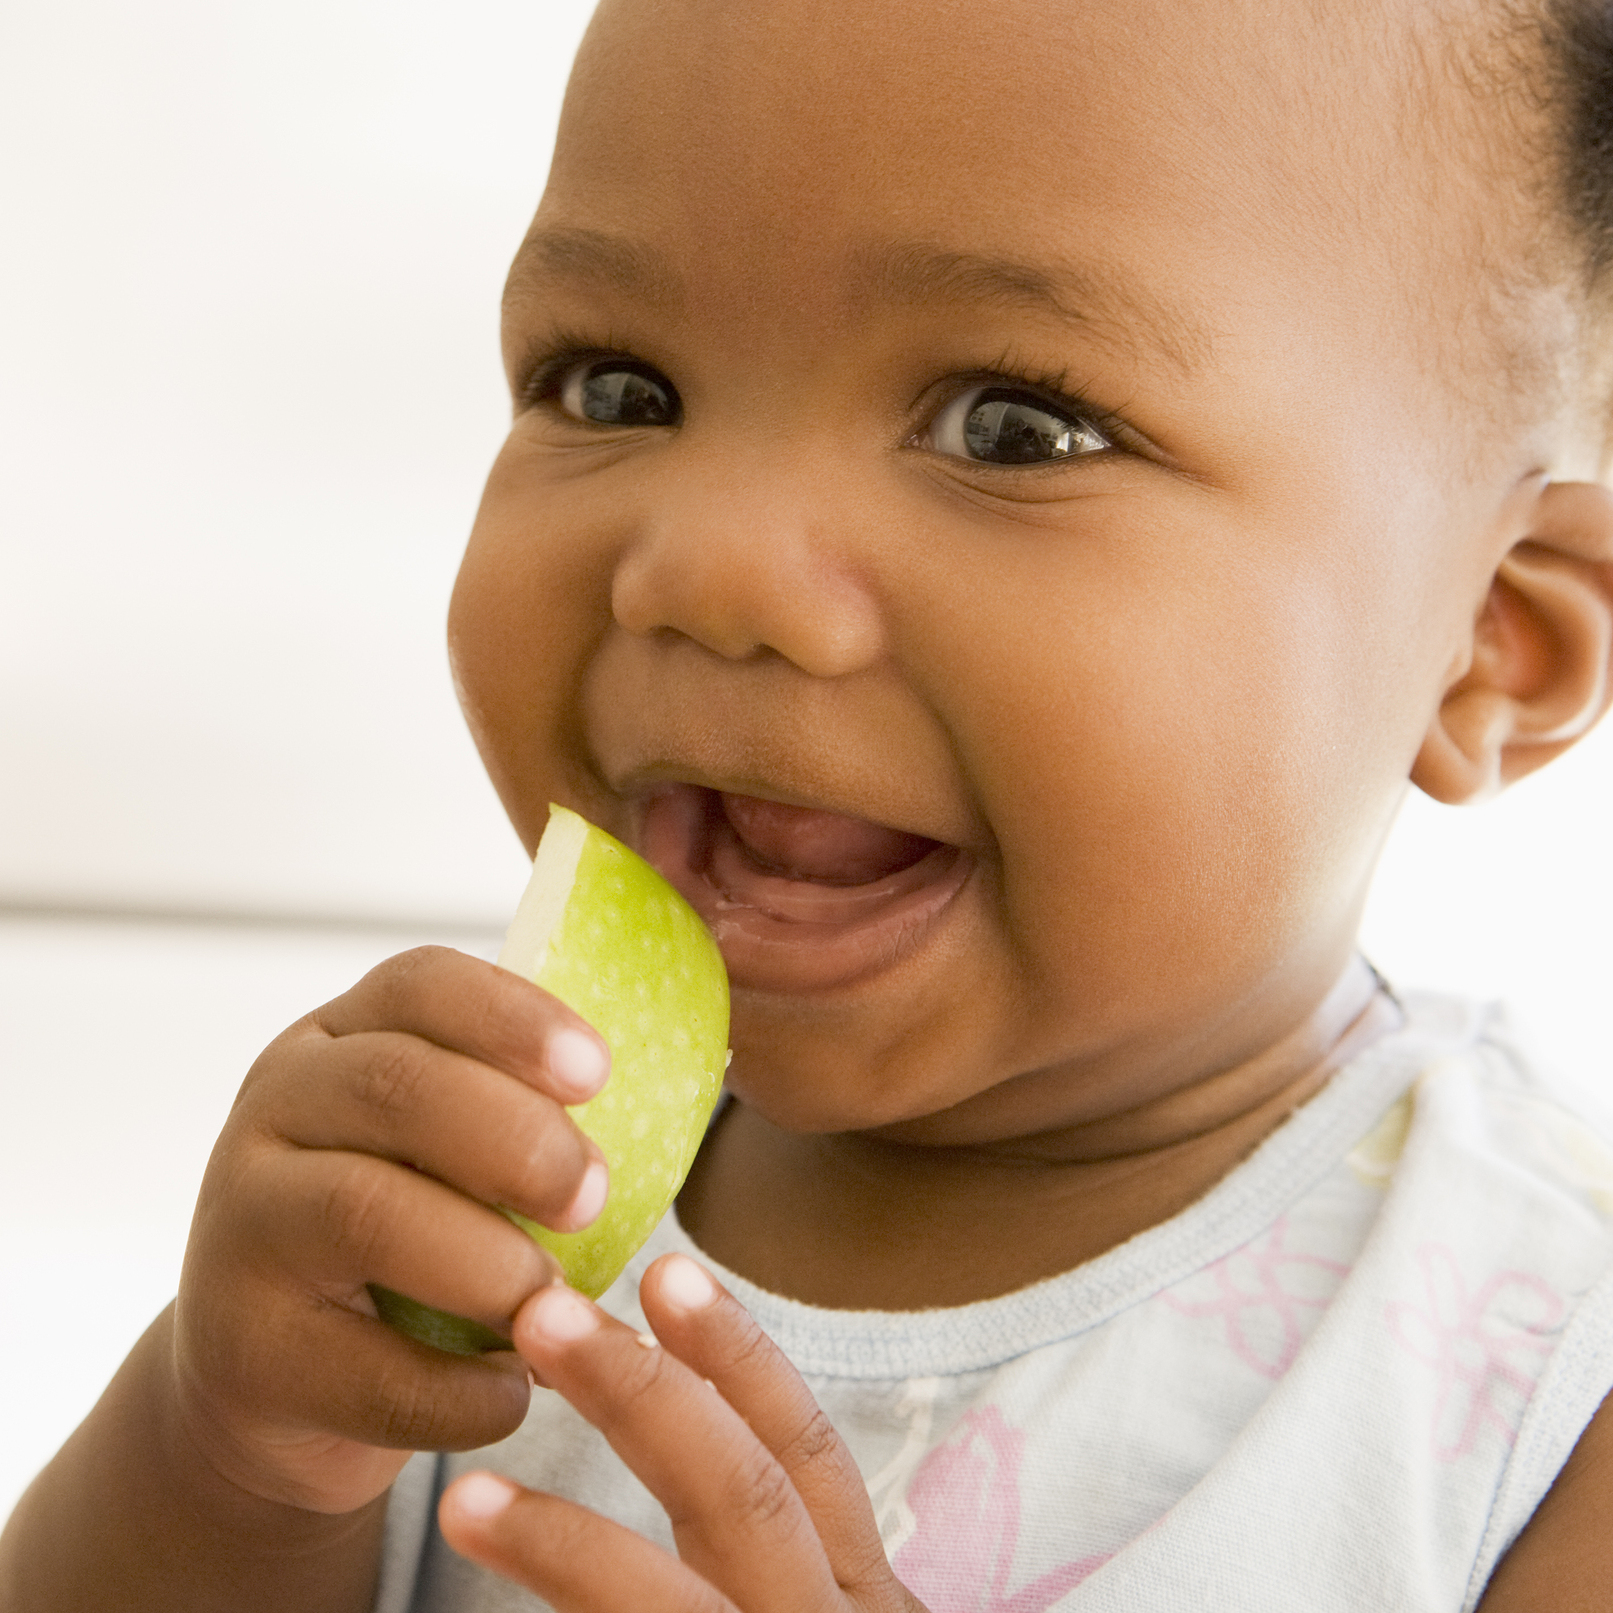 Giving Children The Gift Of Healthy Eating